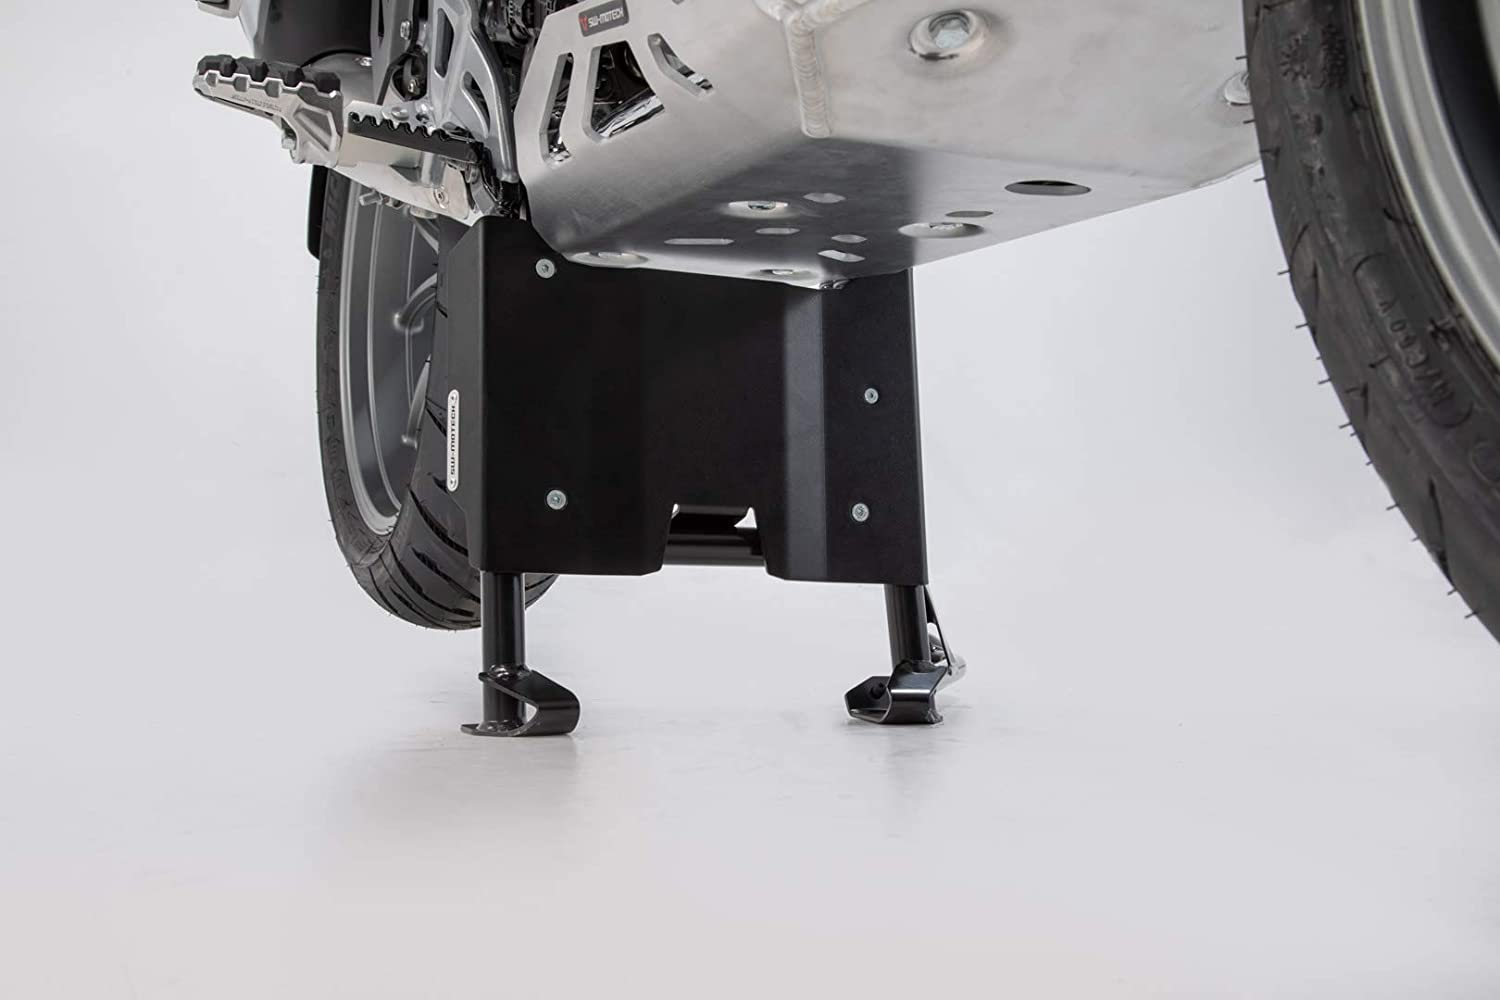 SW-MOTECH MSS.07.781.10301//B Engine Guard Extension for centerstand